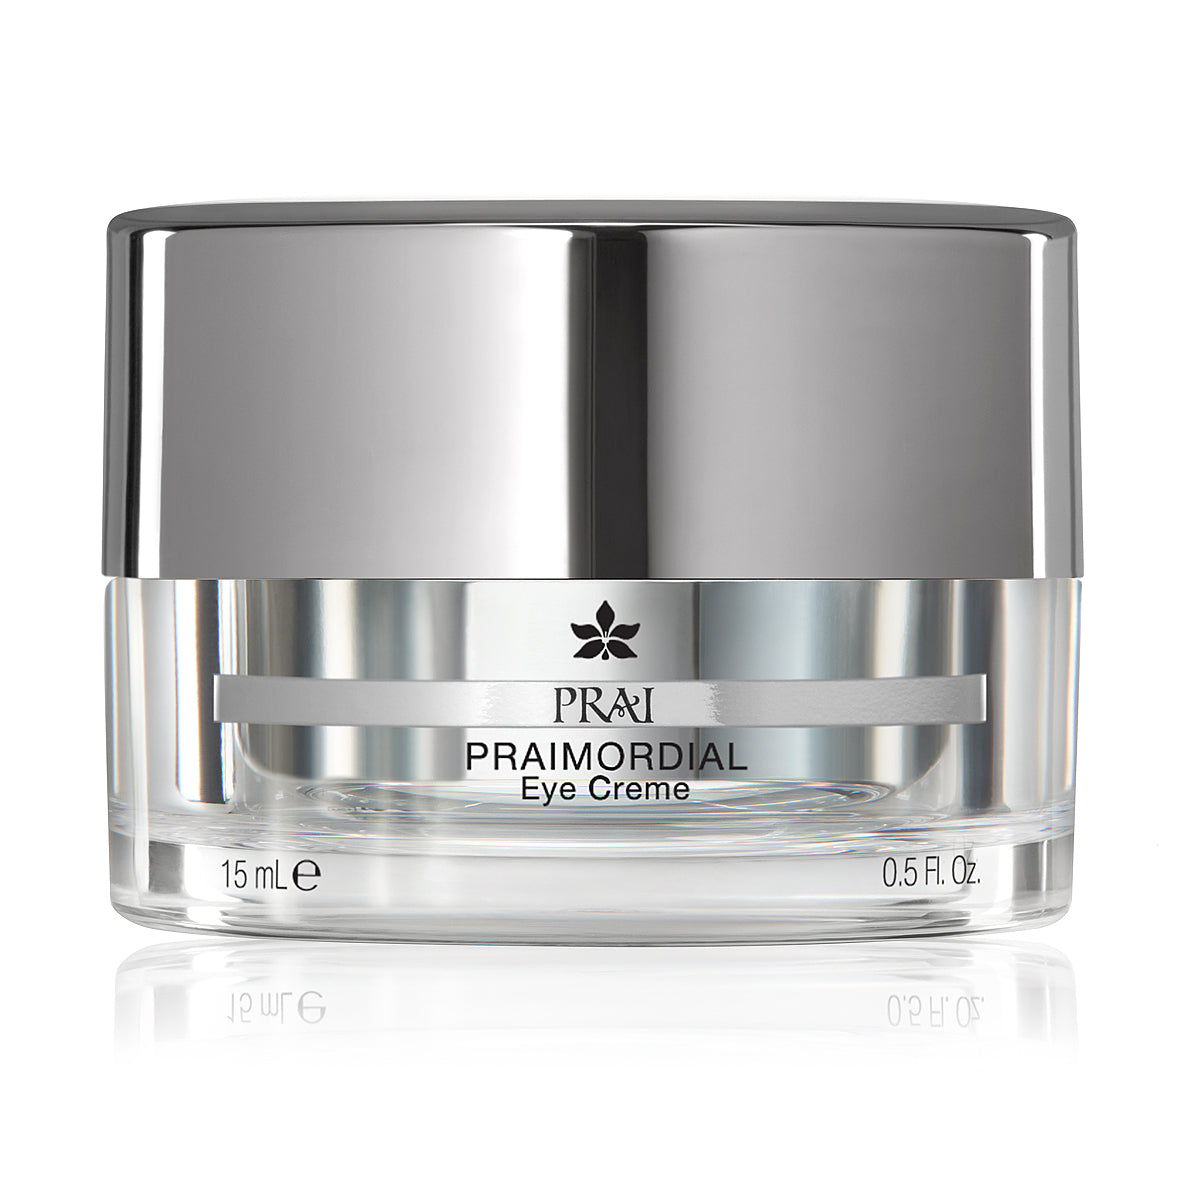 PRAI Beauty Praimordial Eye Creme